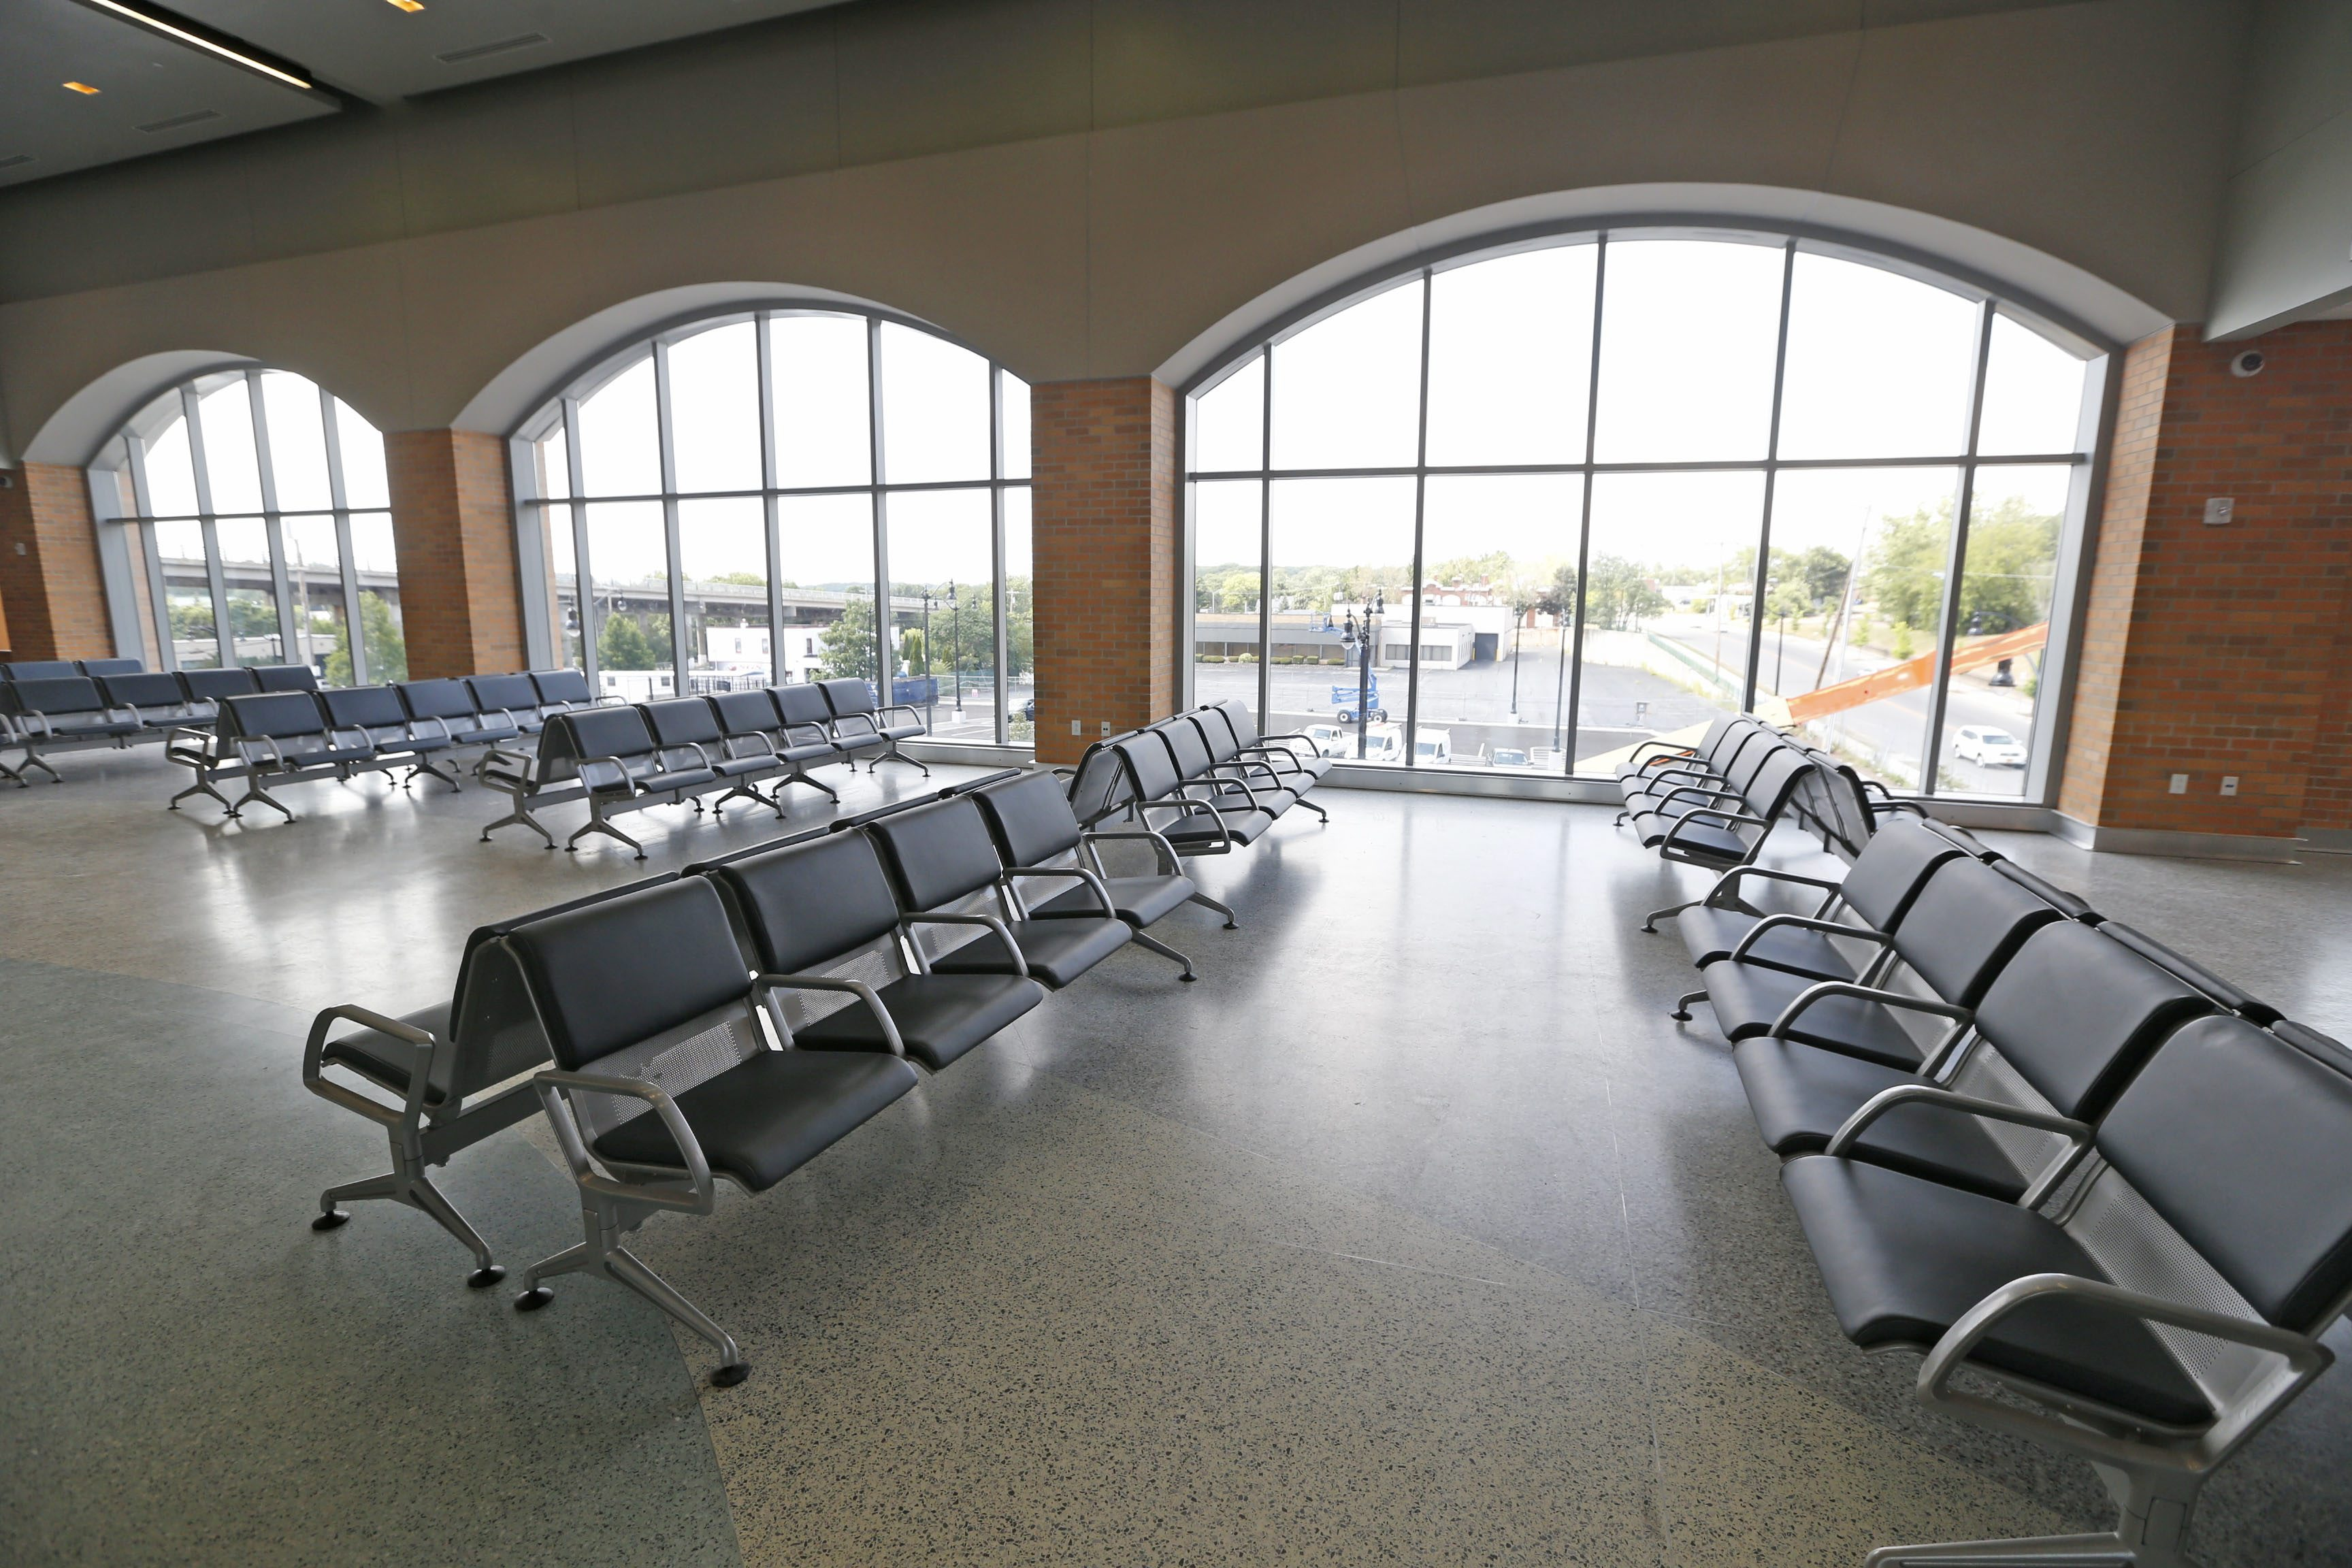 The new $43 million Amtrak train station in Niagara Falls. (Robert Kirkham/Buffalo News)